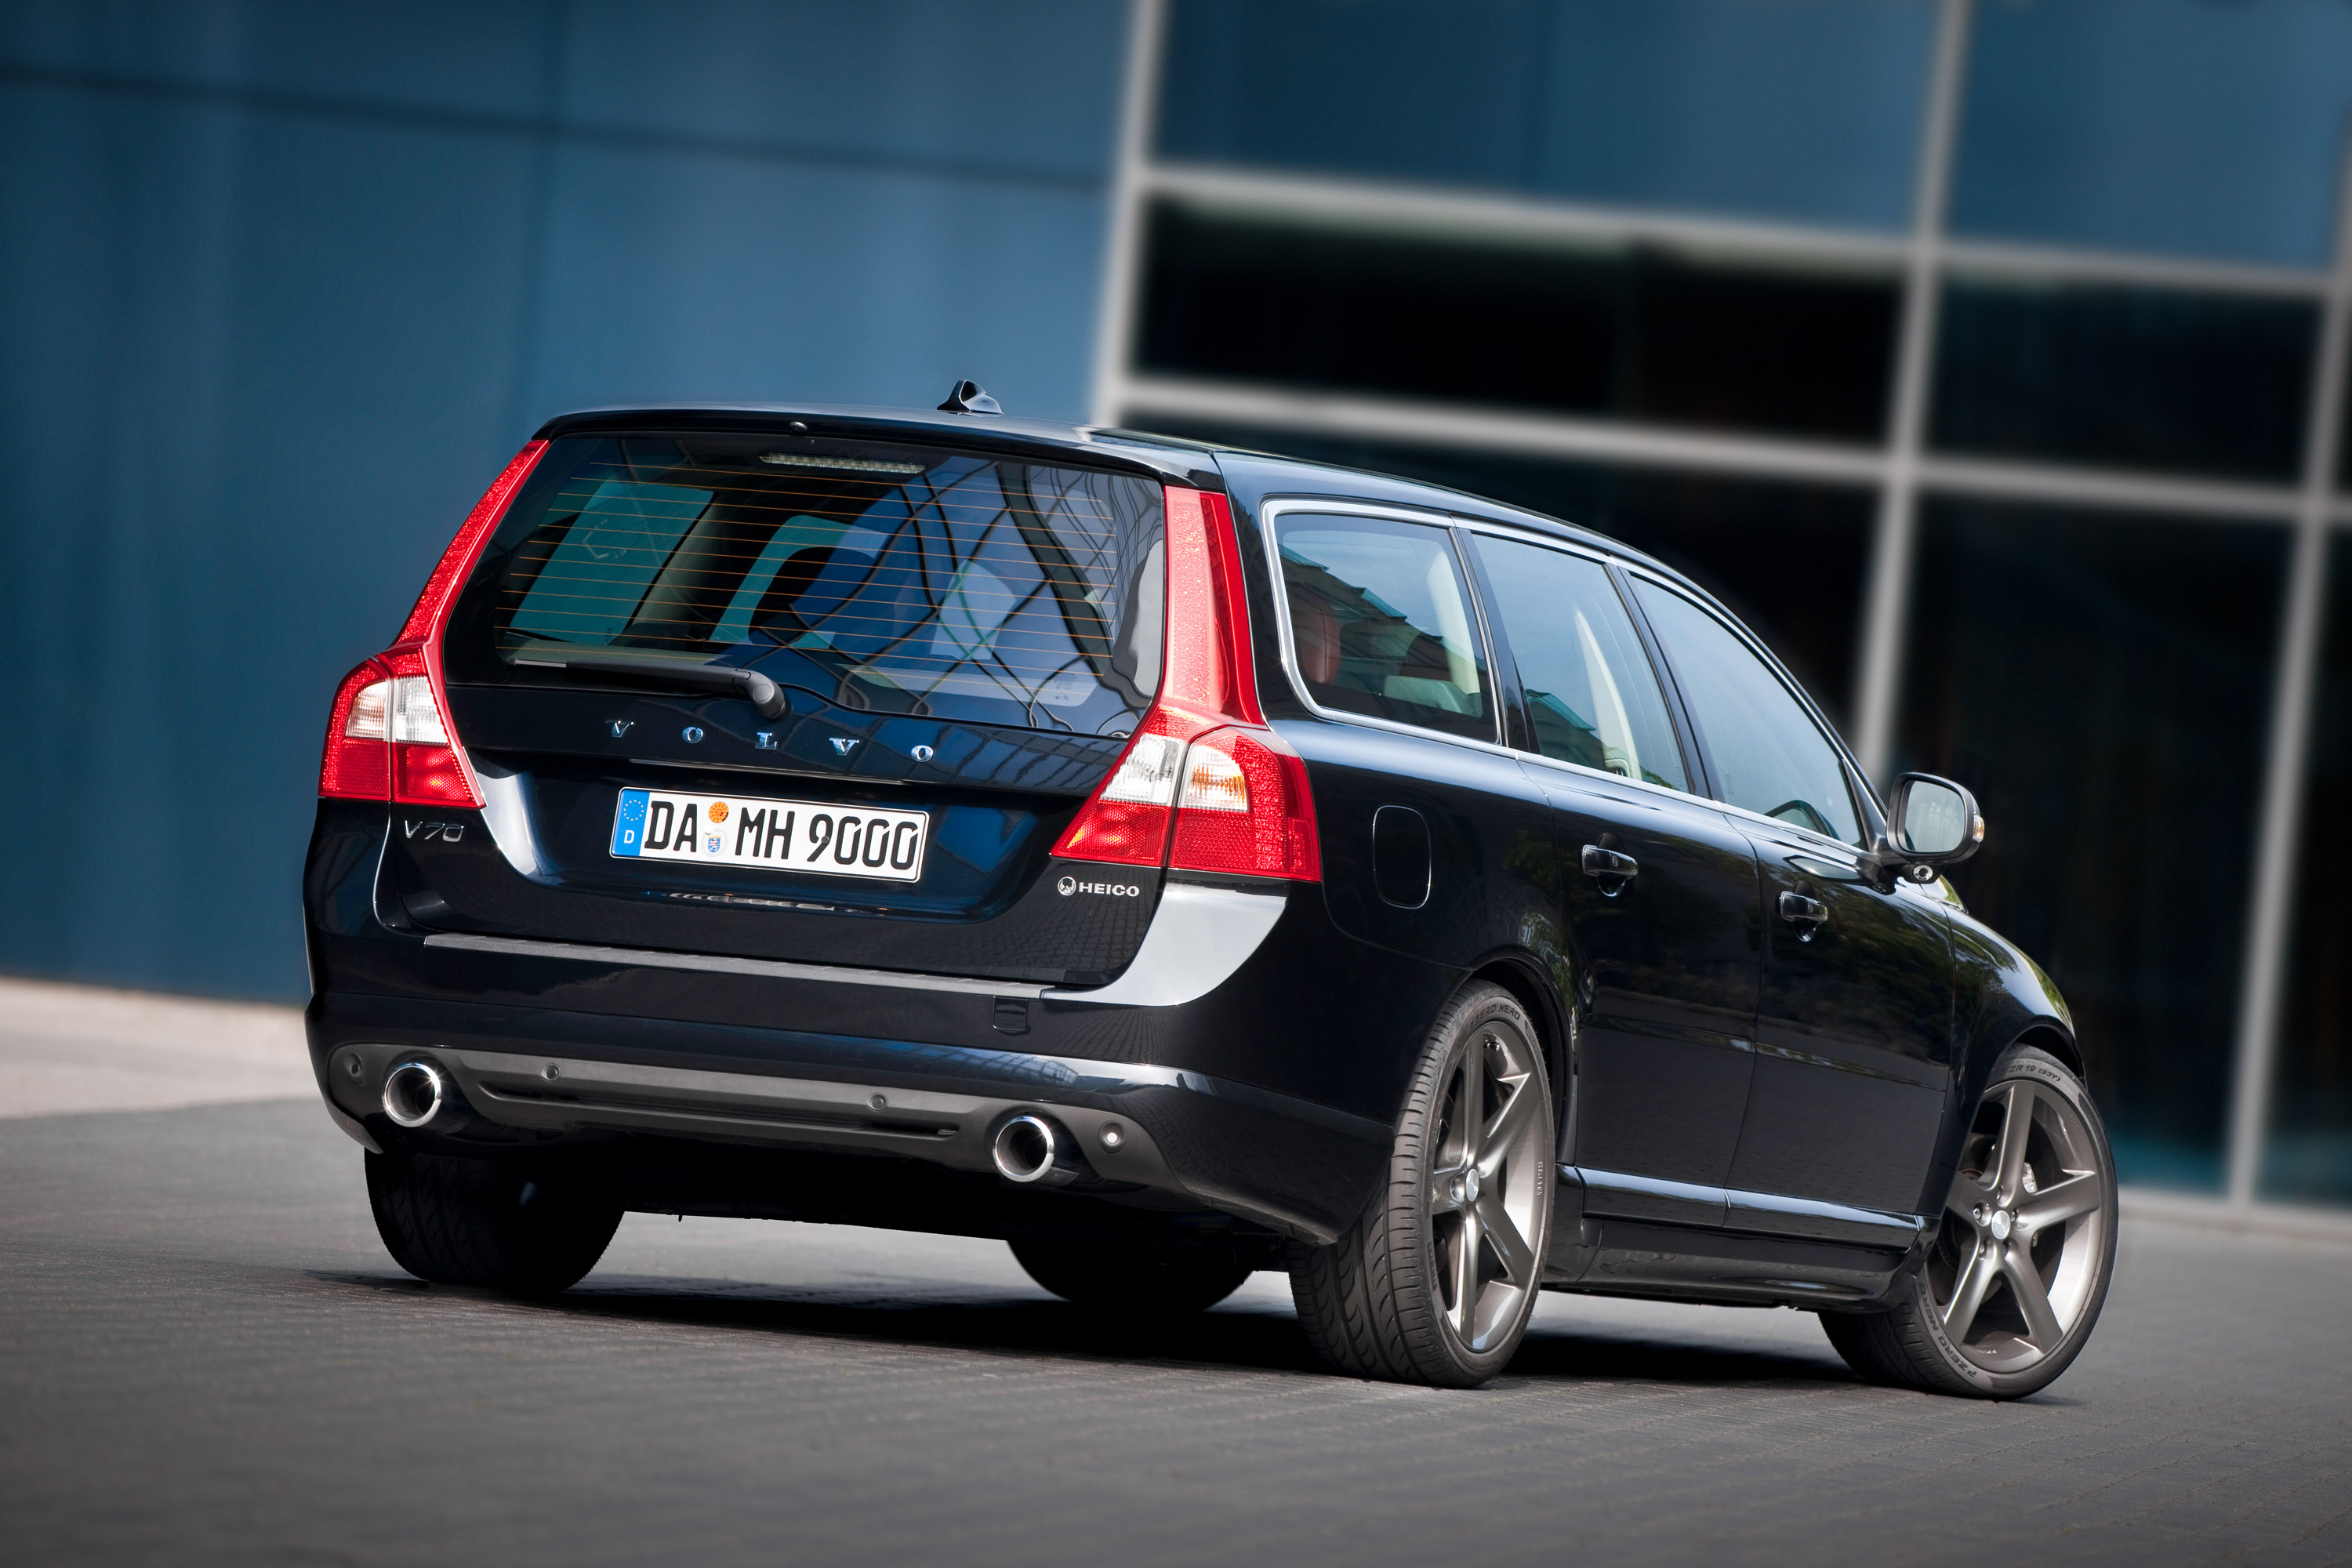 volvo presents the heico v70 t6 awd r design. Black Bedroom Furniture Sets. Home Design Ideas